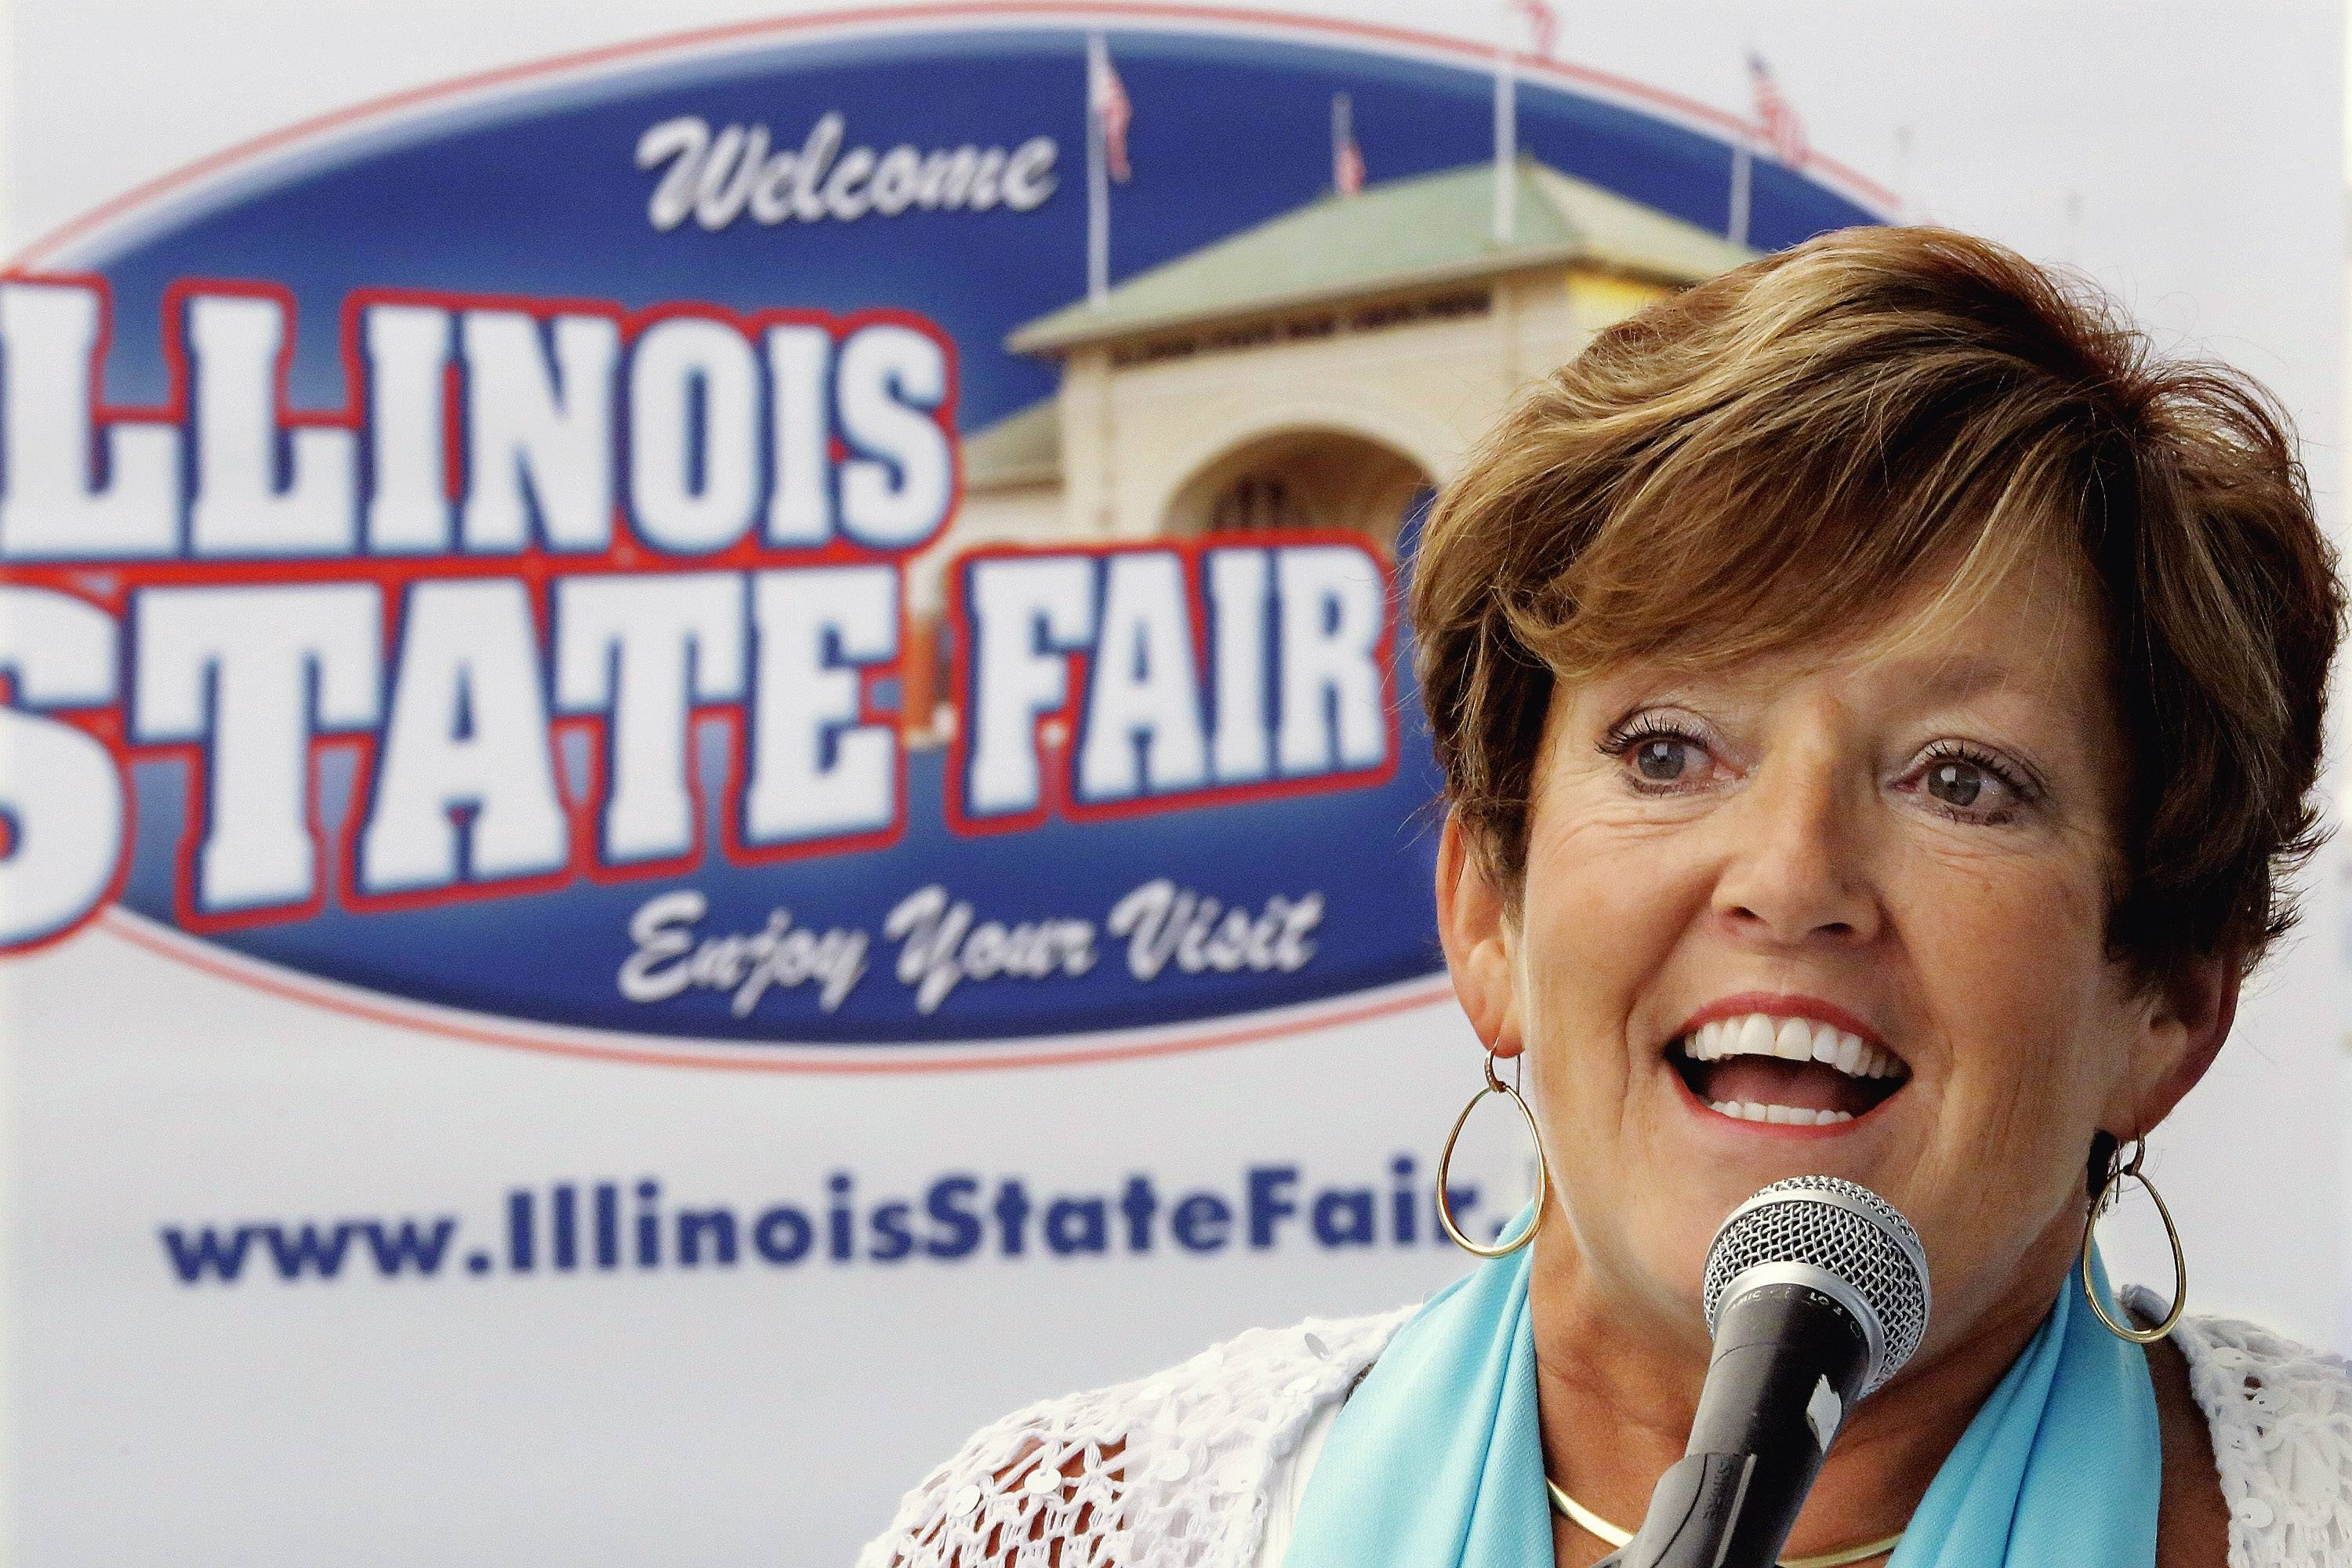 Amy Bliefnick, manager of the Illinois State Fair, was fined $1,000 and suspended for two days without pay by the Executive Ethics Commission.